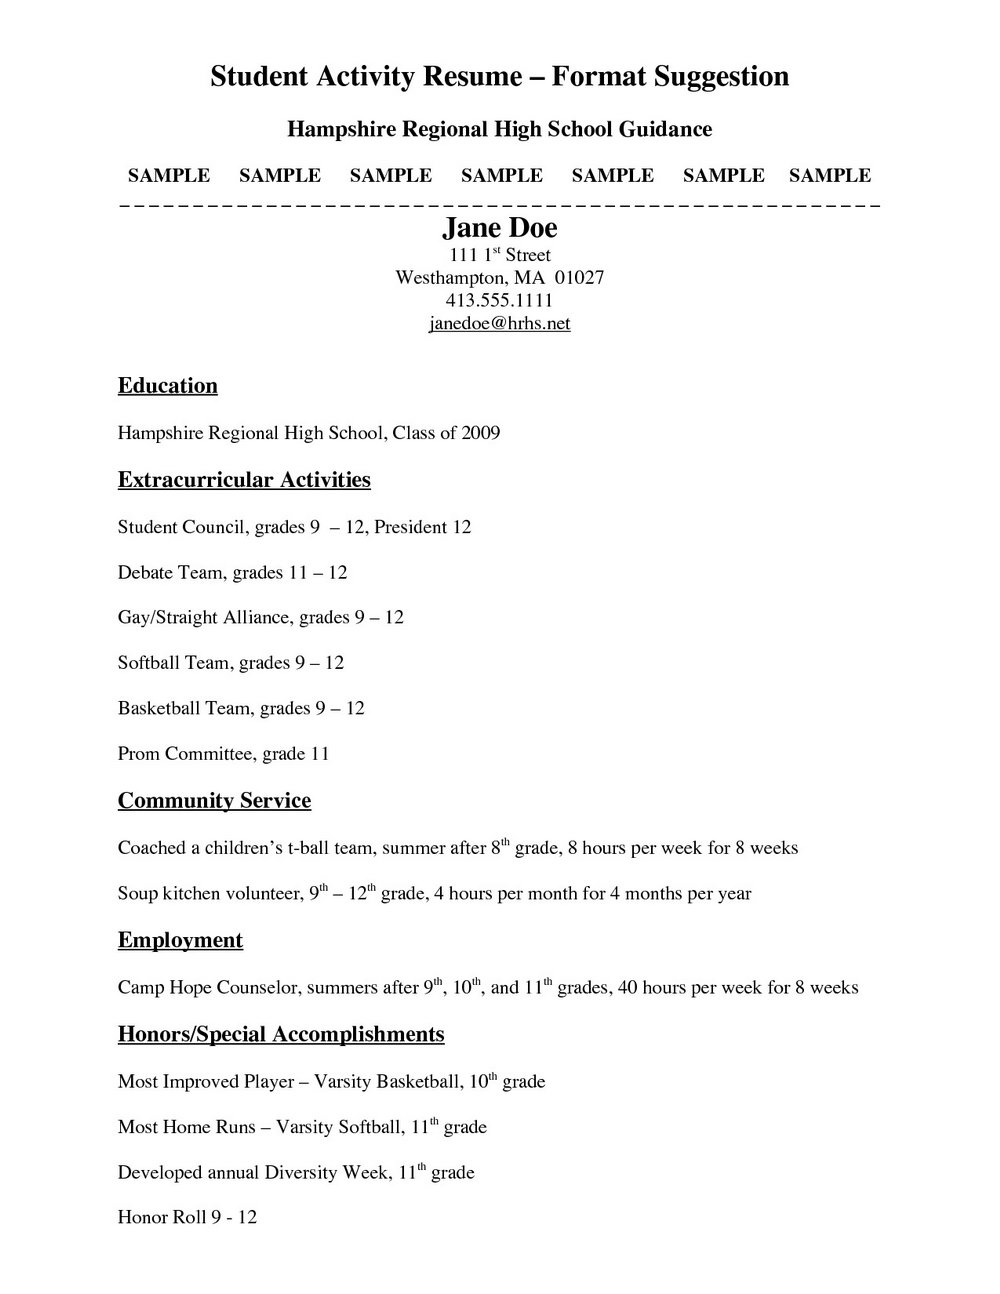 Free High School Resume Templates